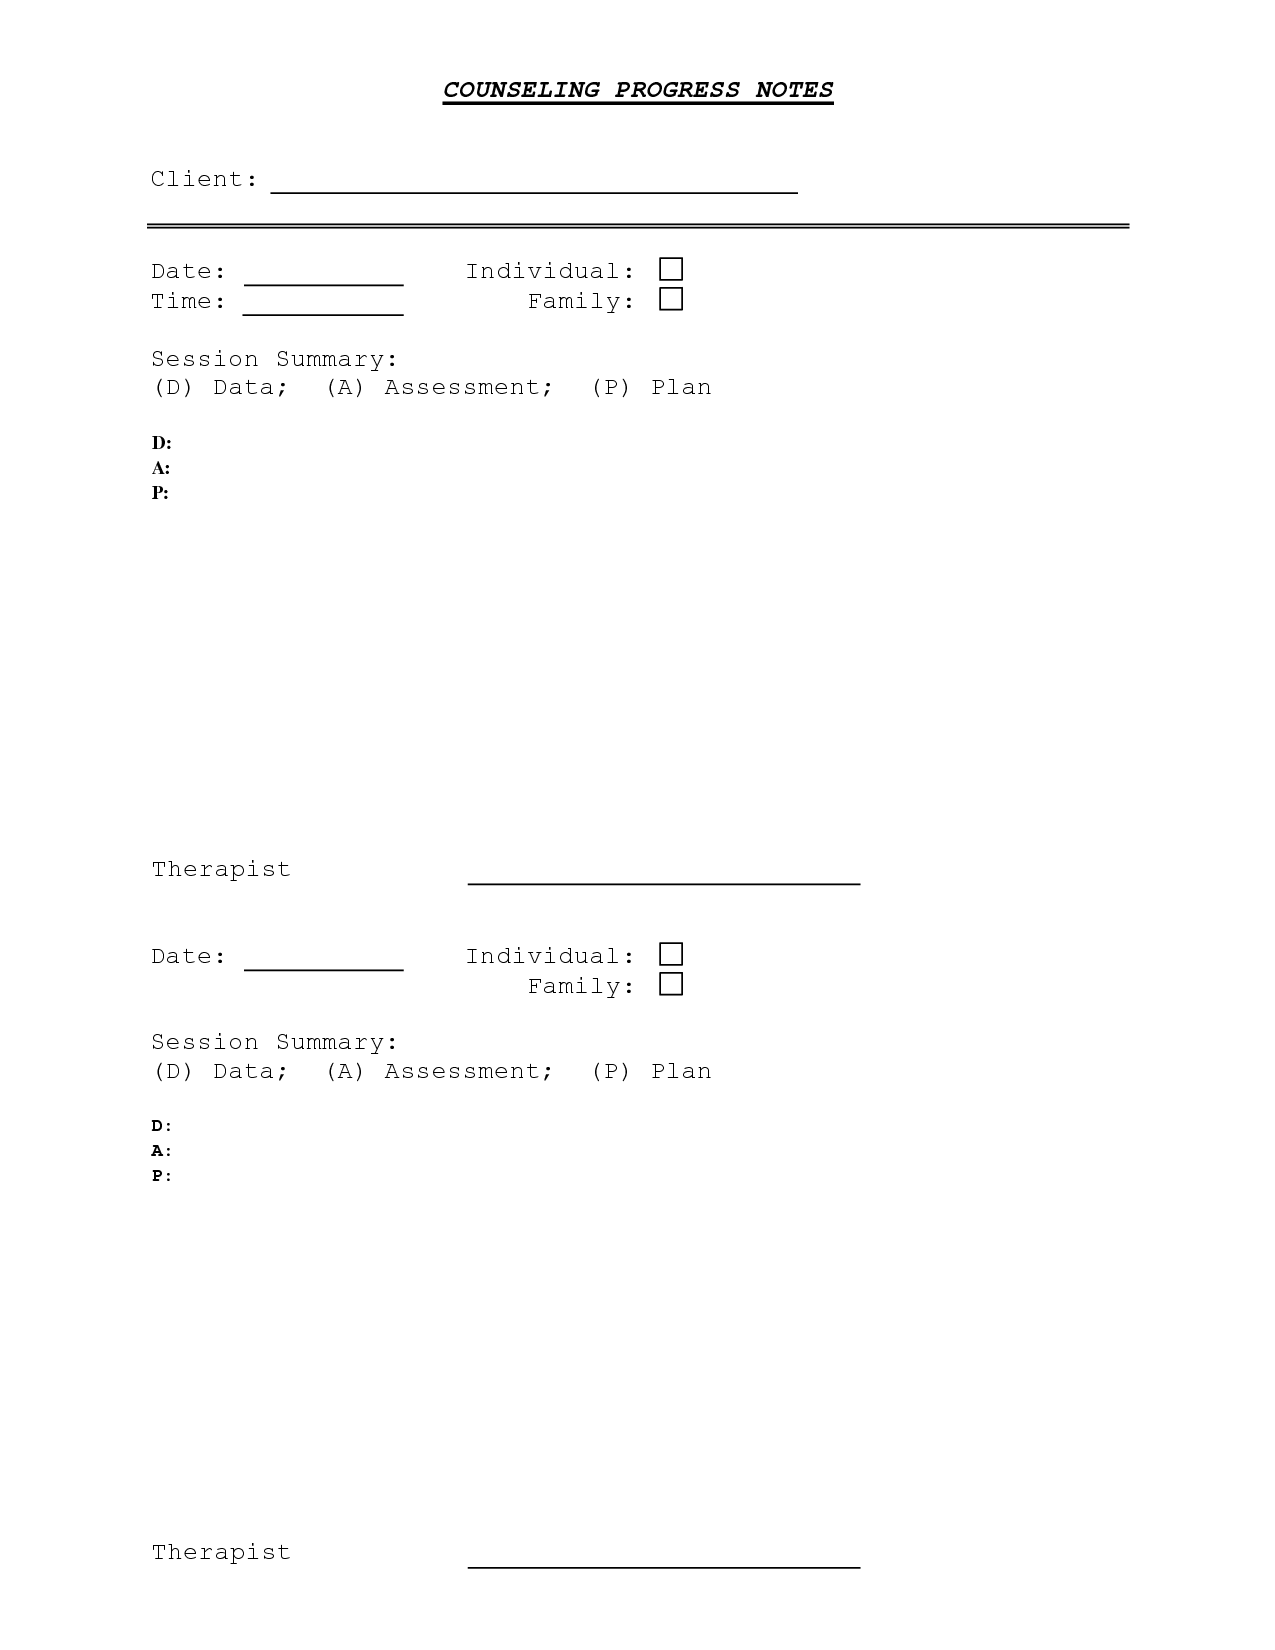 Counseling Progress Note Template | Counseling: DAP Notes ...